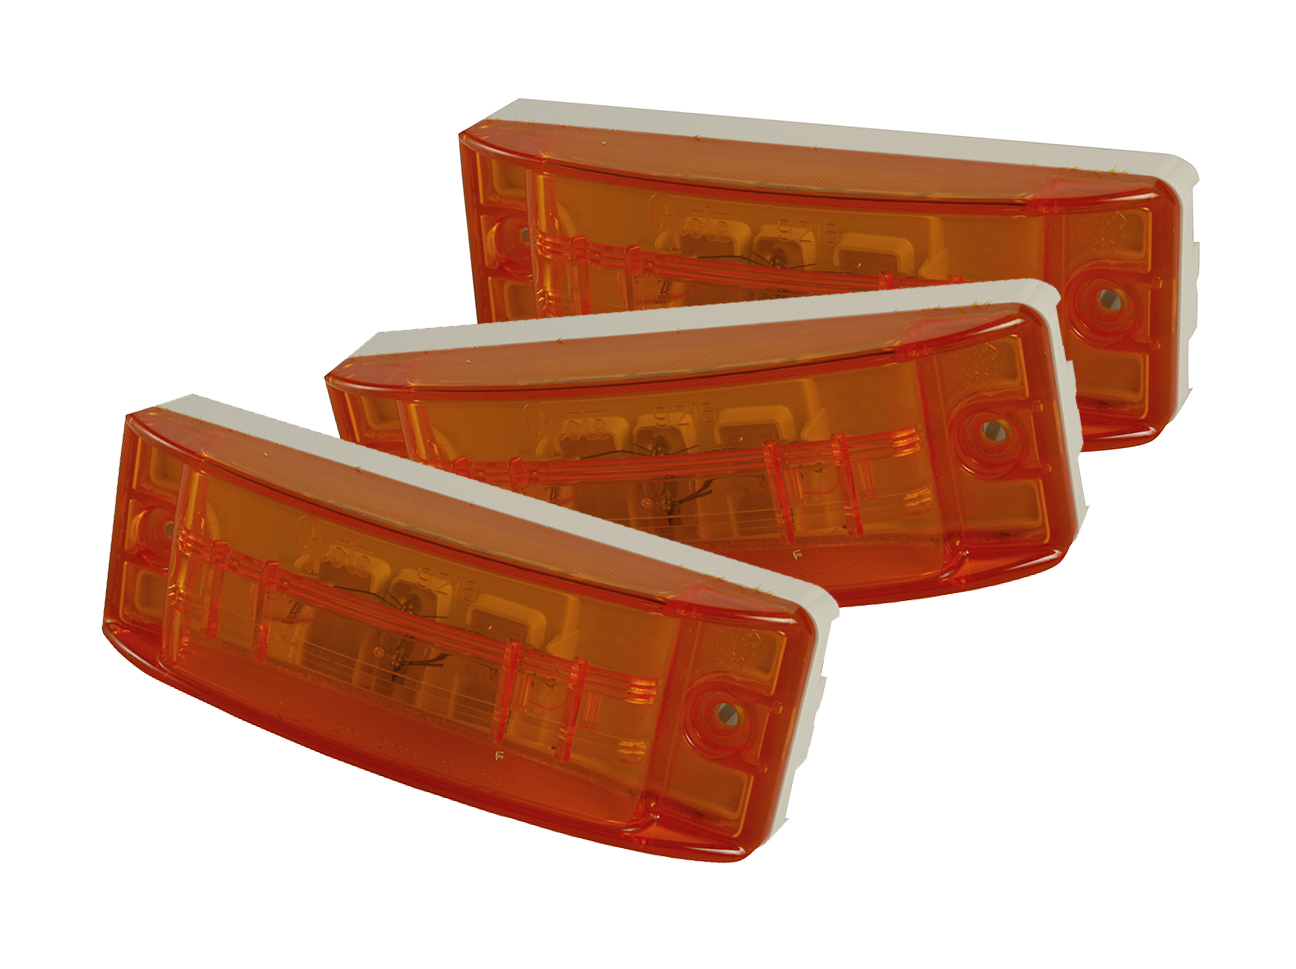 Grote Industries - 46833-3 – Sealed Turtleback® II Clearance Marker Light, Optic Lens, Yellow, Bulk Pack